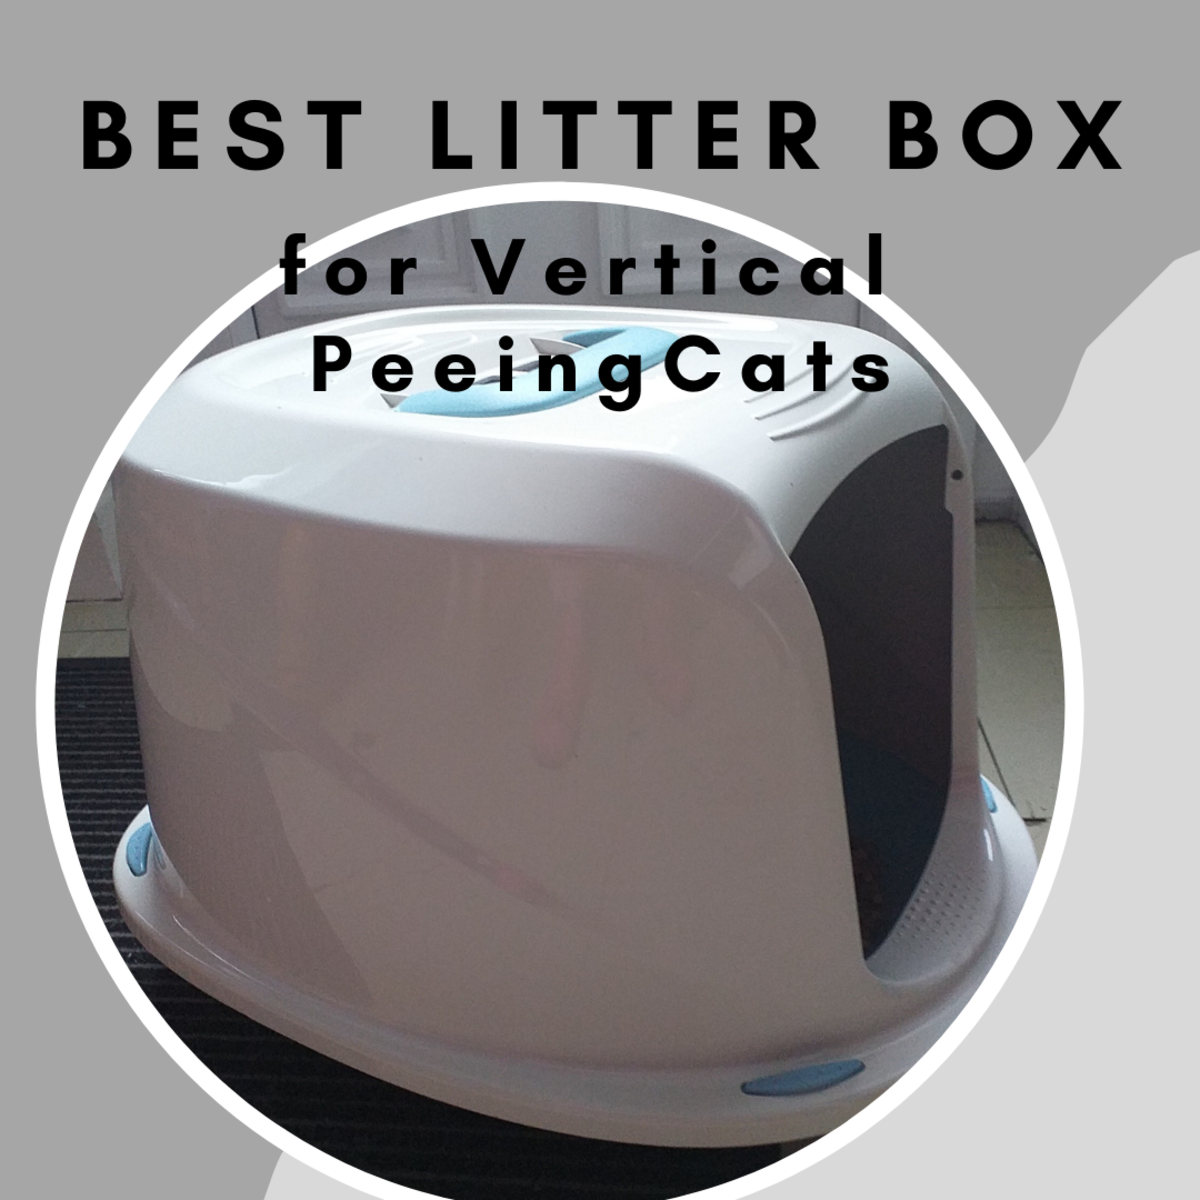 best-type-of-litter-box-for-a-vertical-peeing-cat